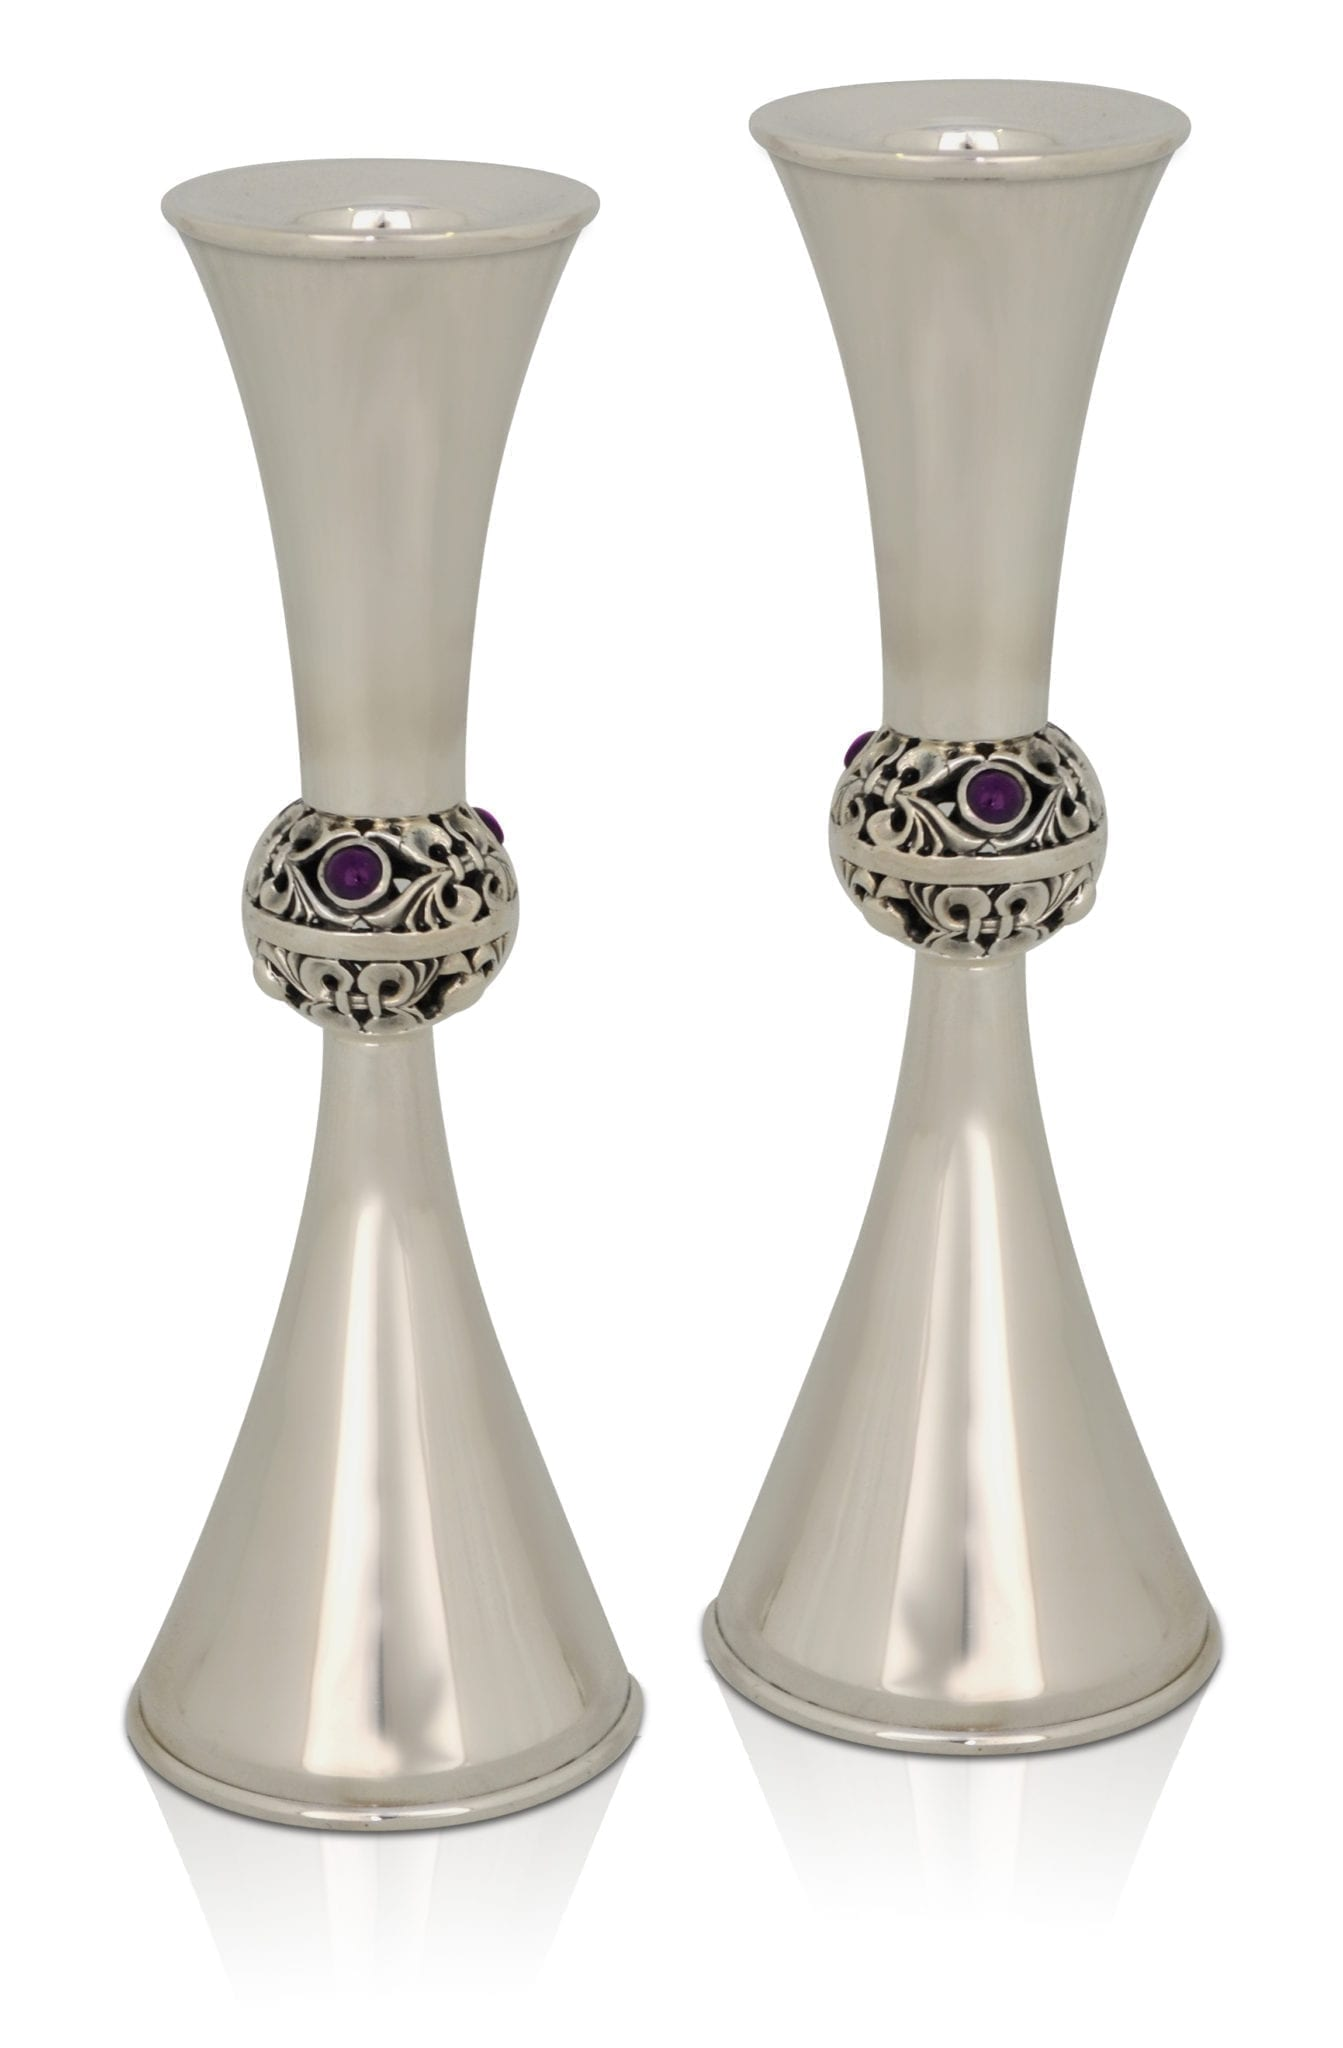 Flowing sterling silver candlesticks with semi-precious amethyst stones. Shabbat Judaica made in Israel